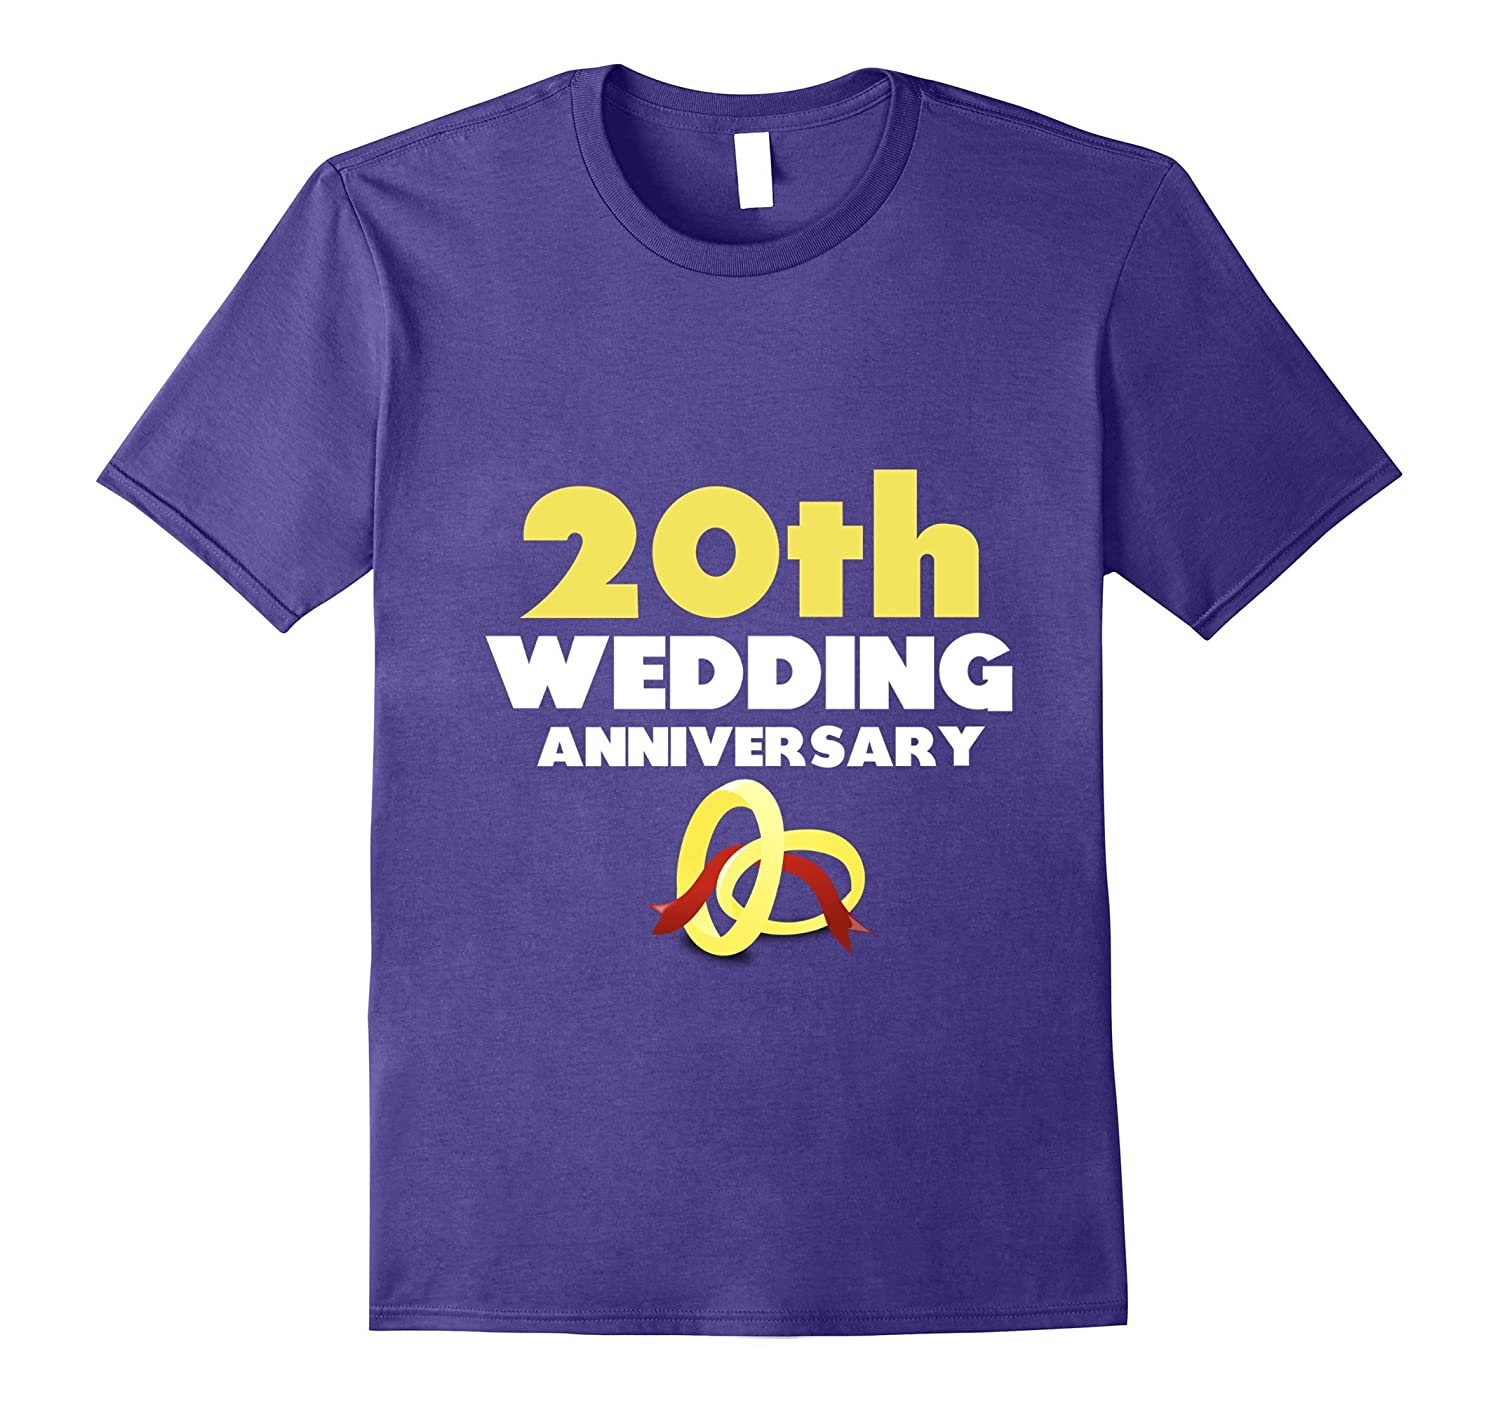 20th Wedding Anniversary 20 Years T-Shirt Gift for Couples-CD